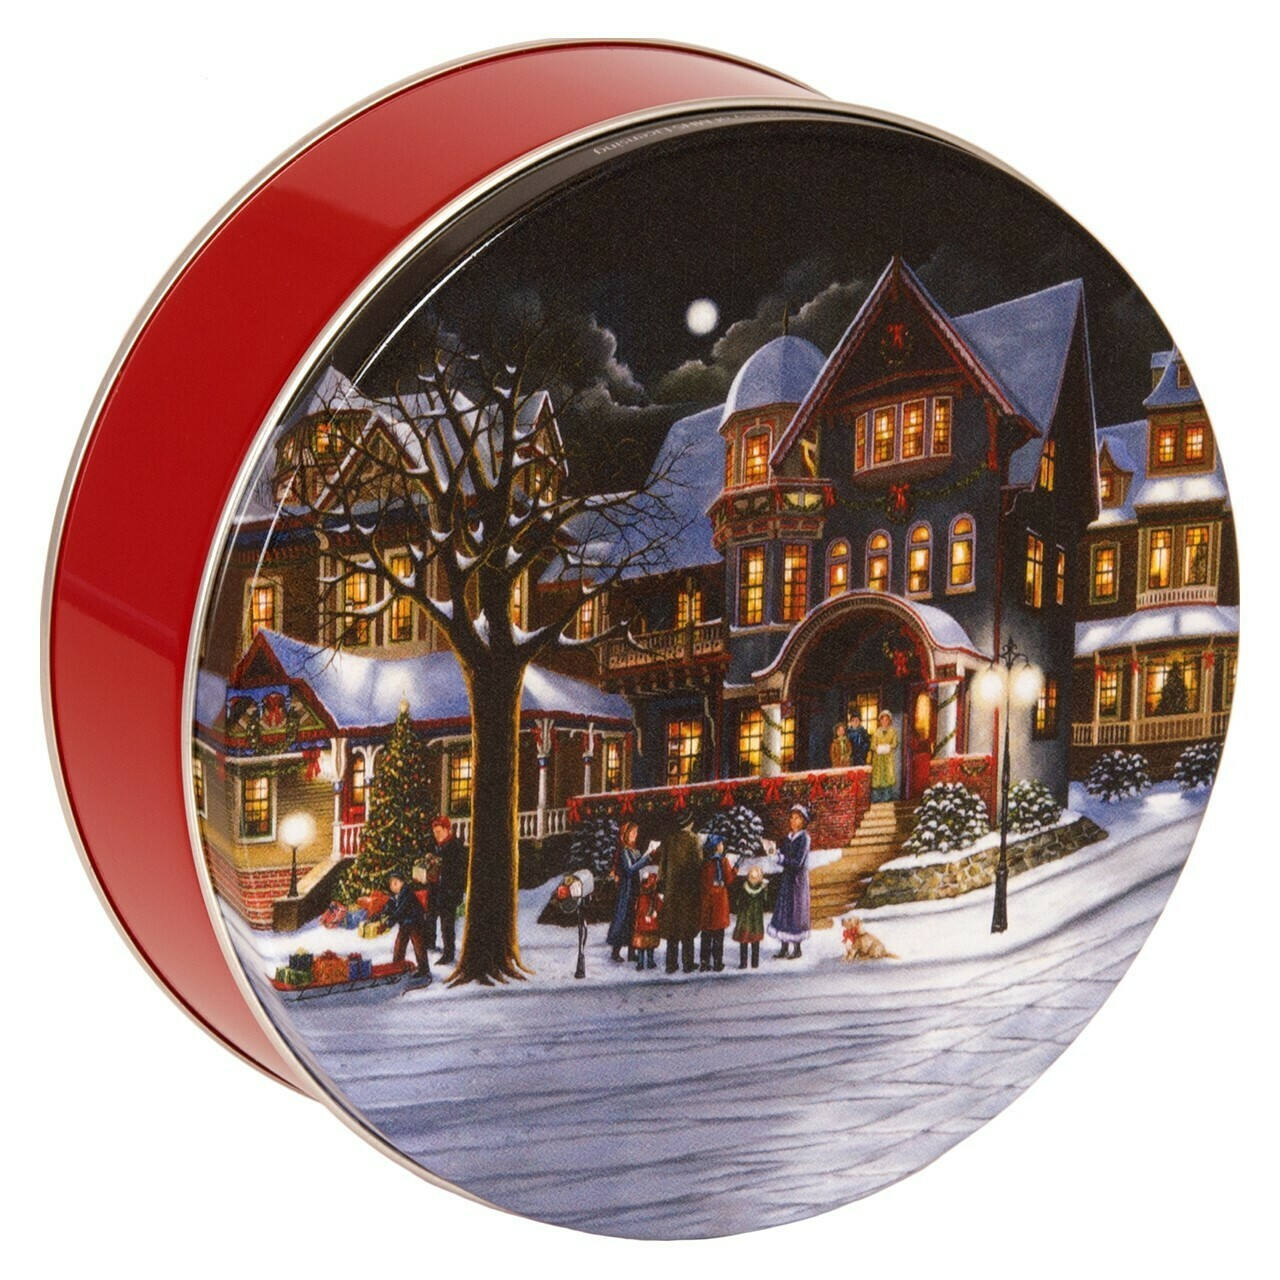 Christmas Carolers Candy Tin with 1 Pound of Fudge - Your Choice